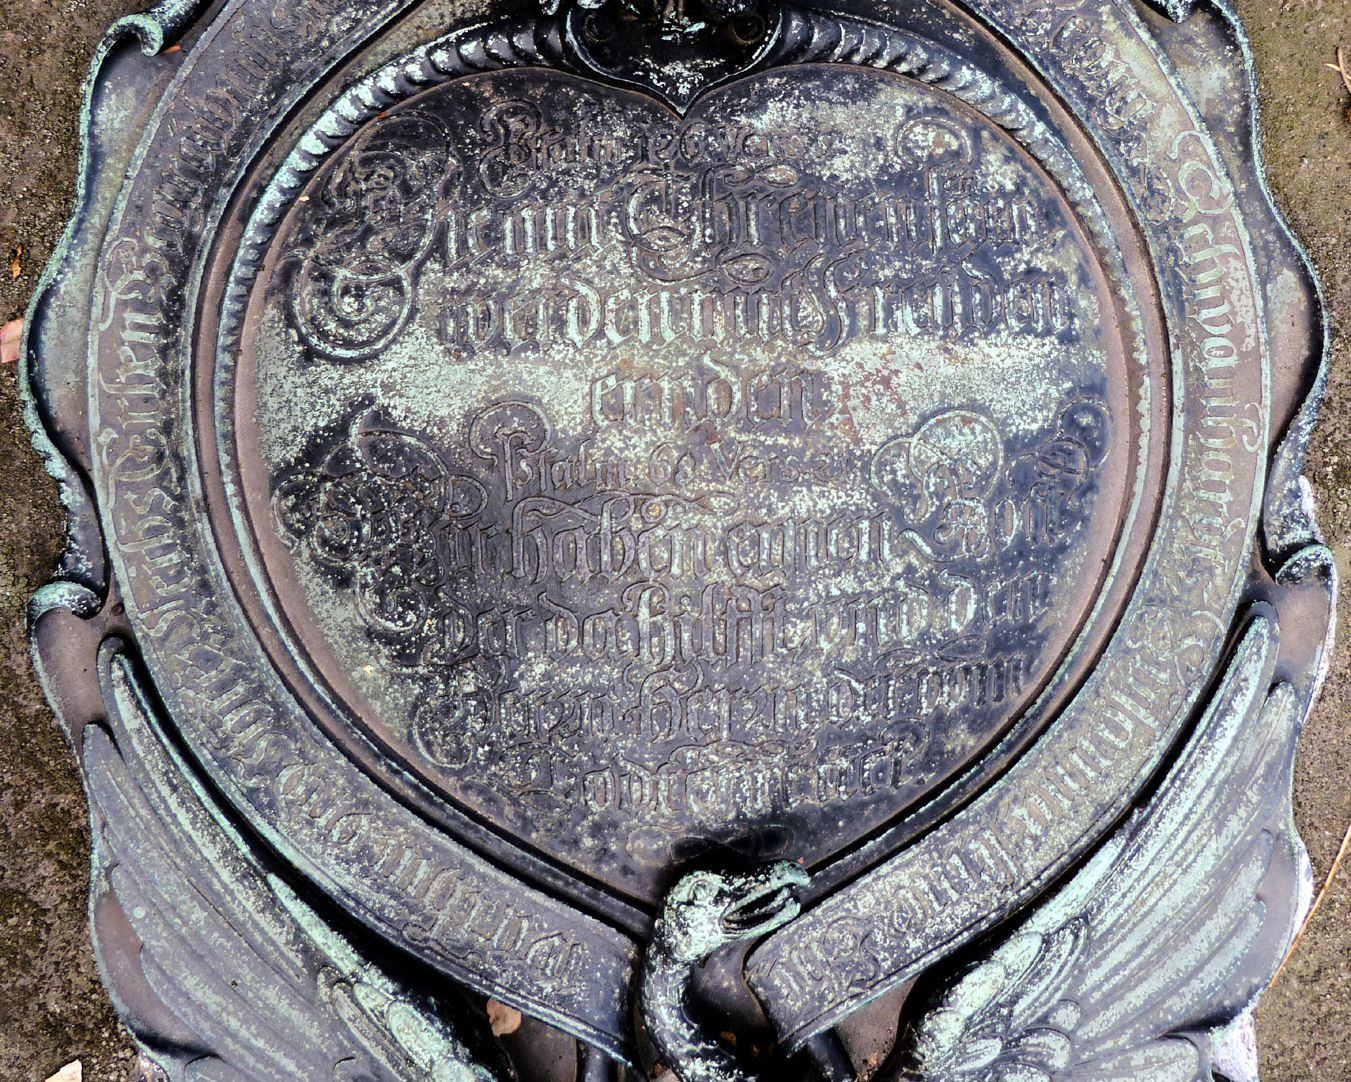 Epitaph des Georg Schwanhardt (glass cutter) and his spouse Susanna Detail, inscription of the cartouche